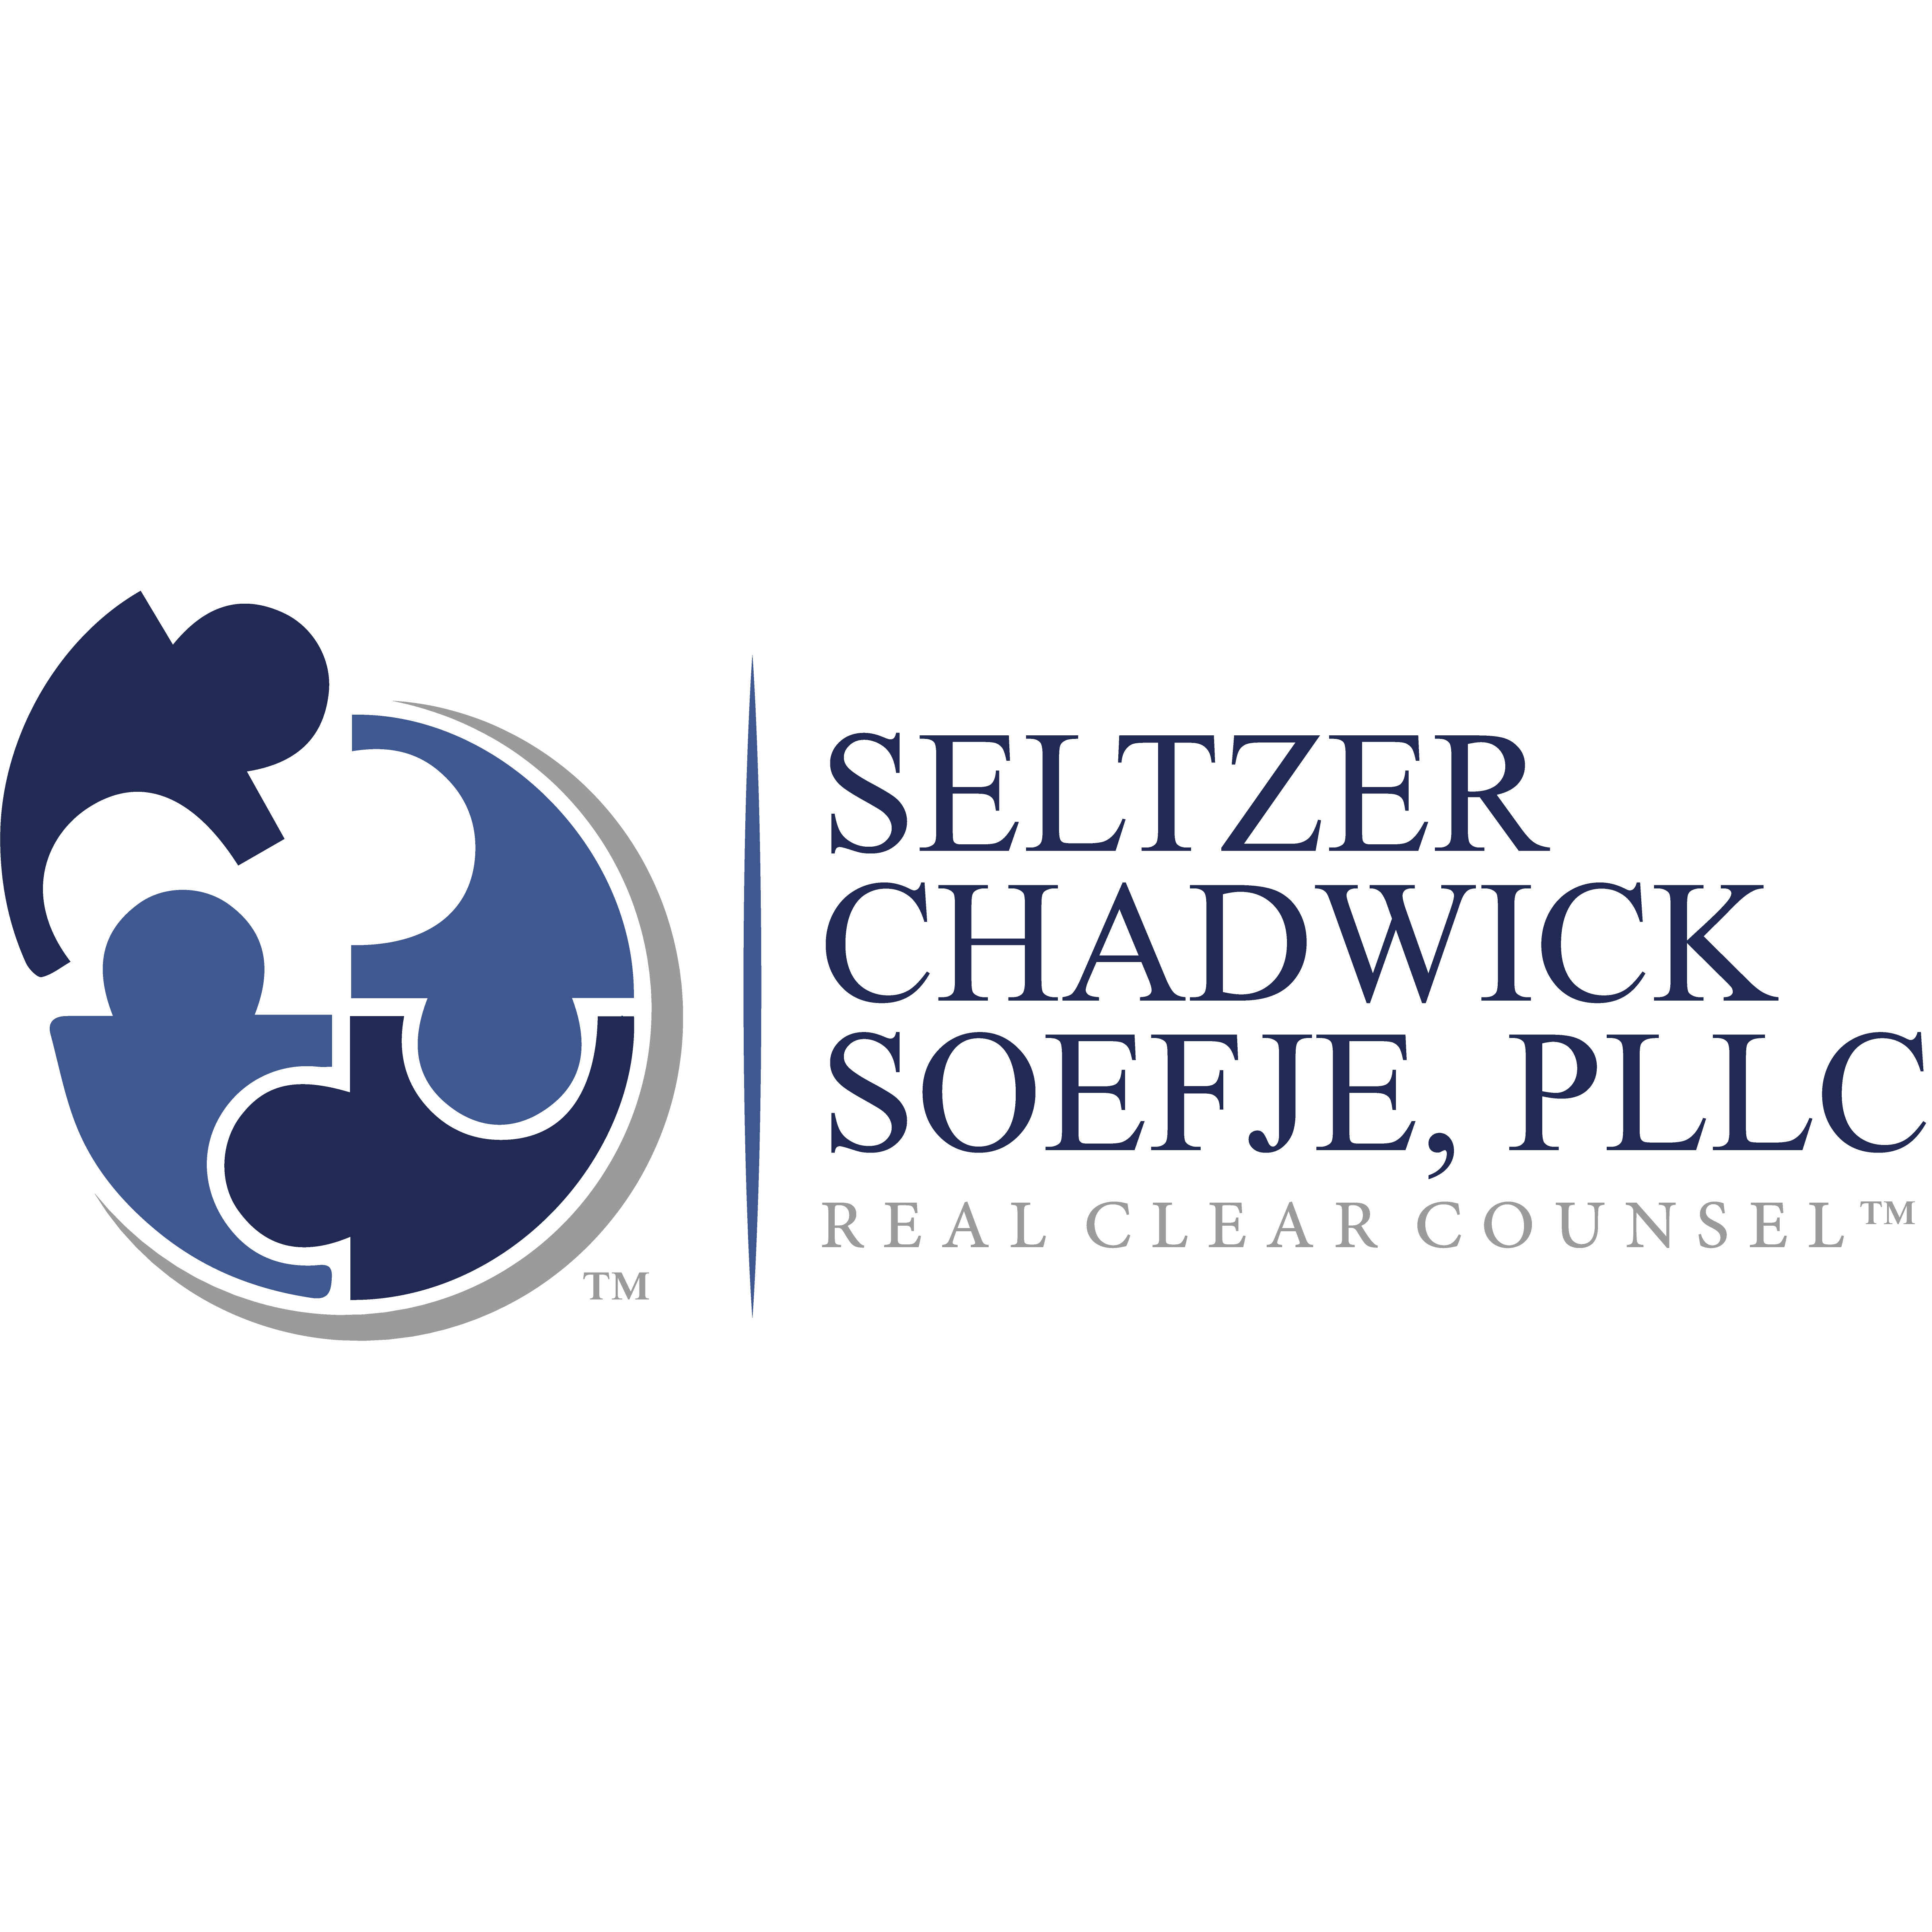 Seltzer Chadwick Soefje Pllc In Frisco Tx 75034